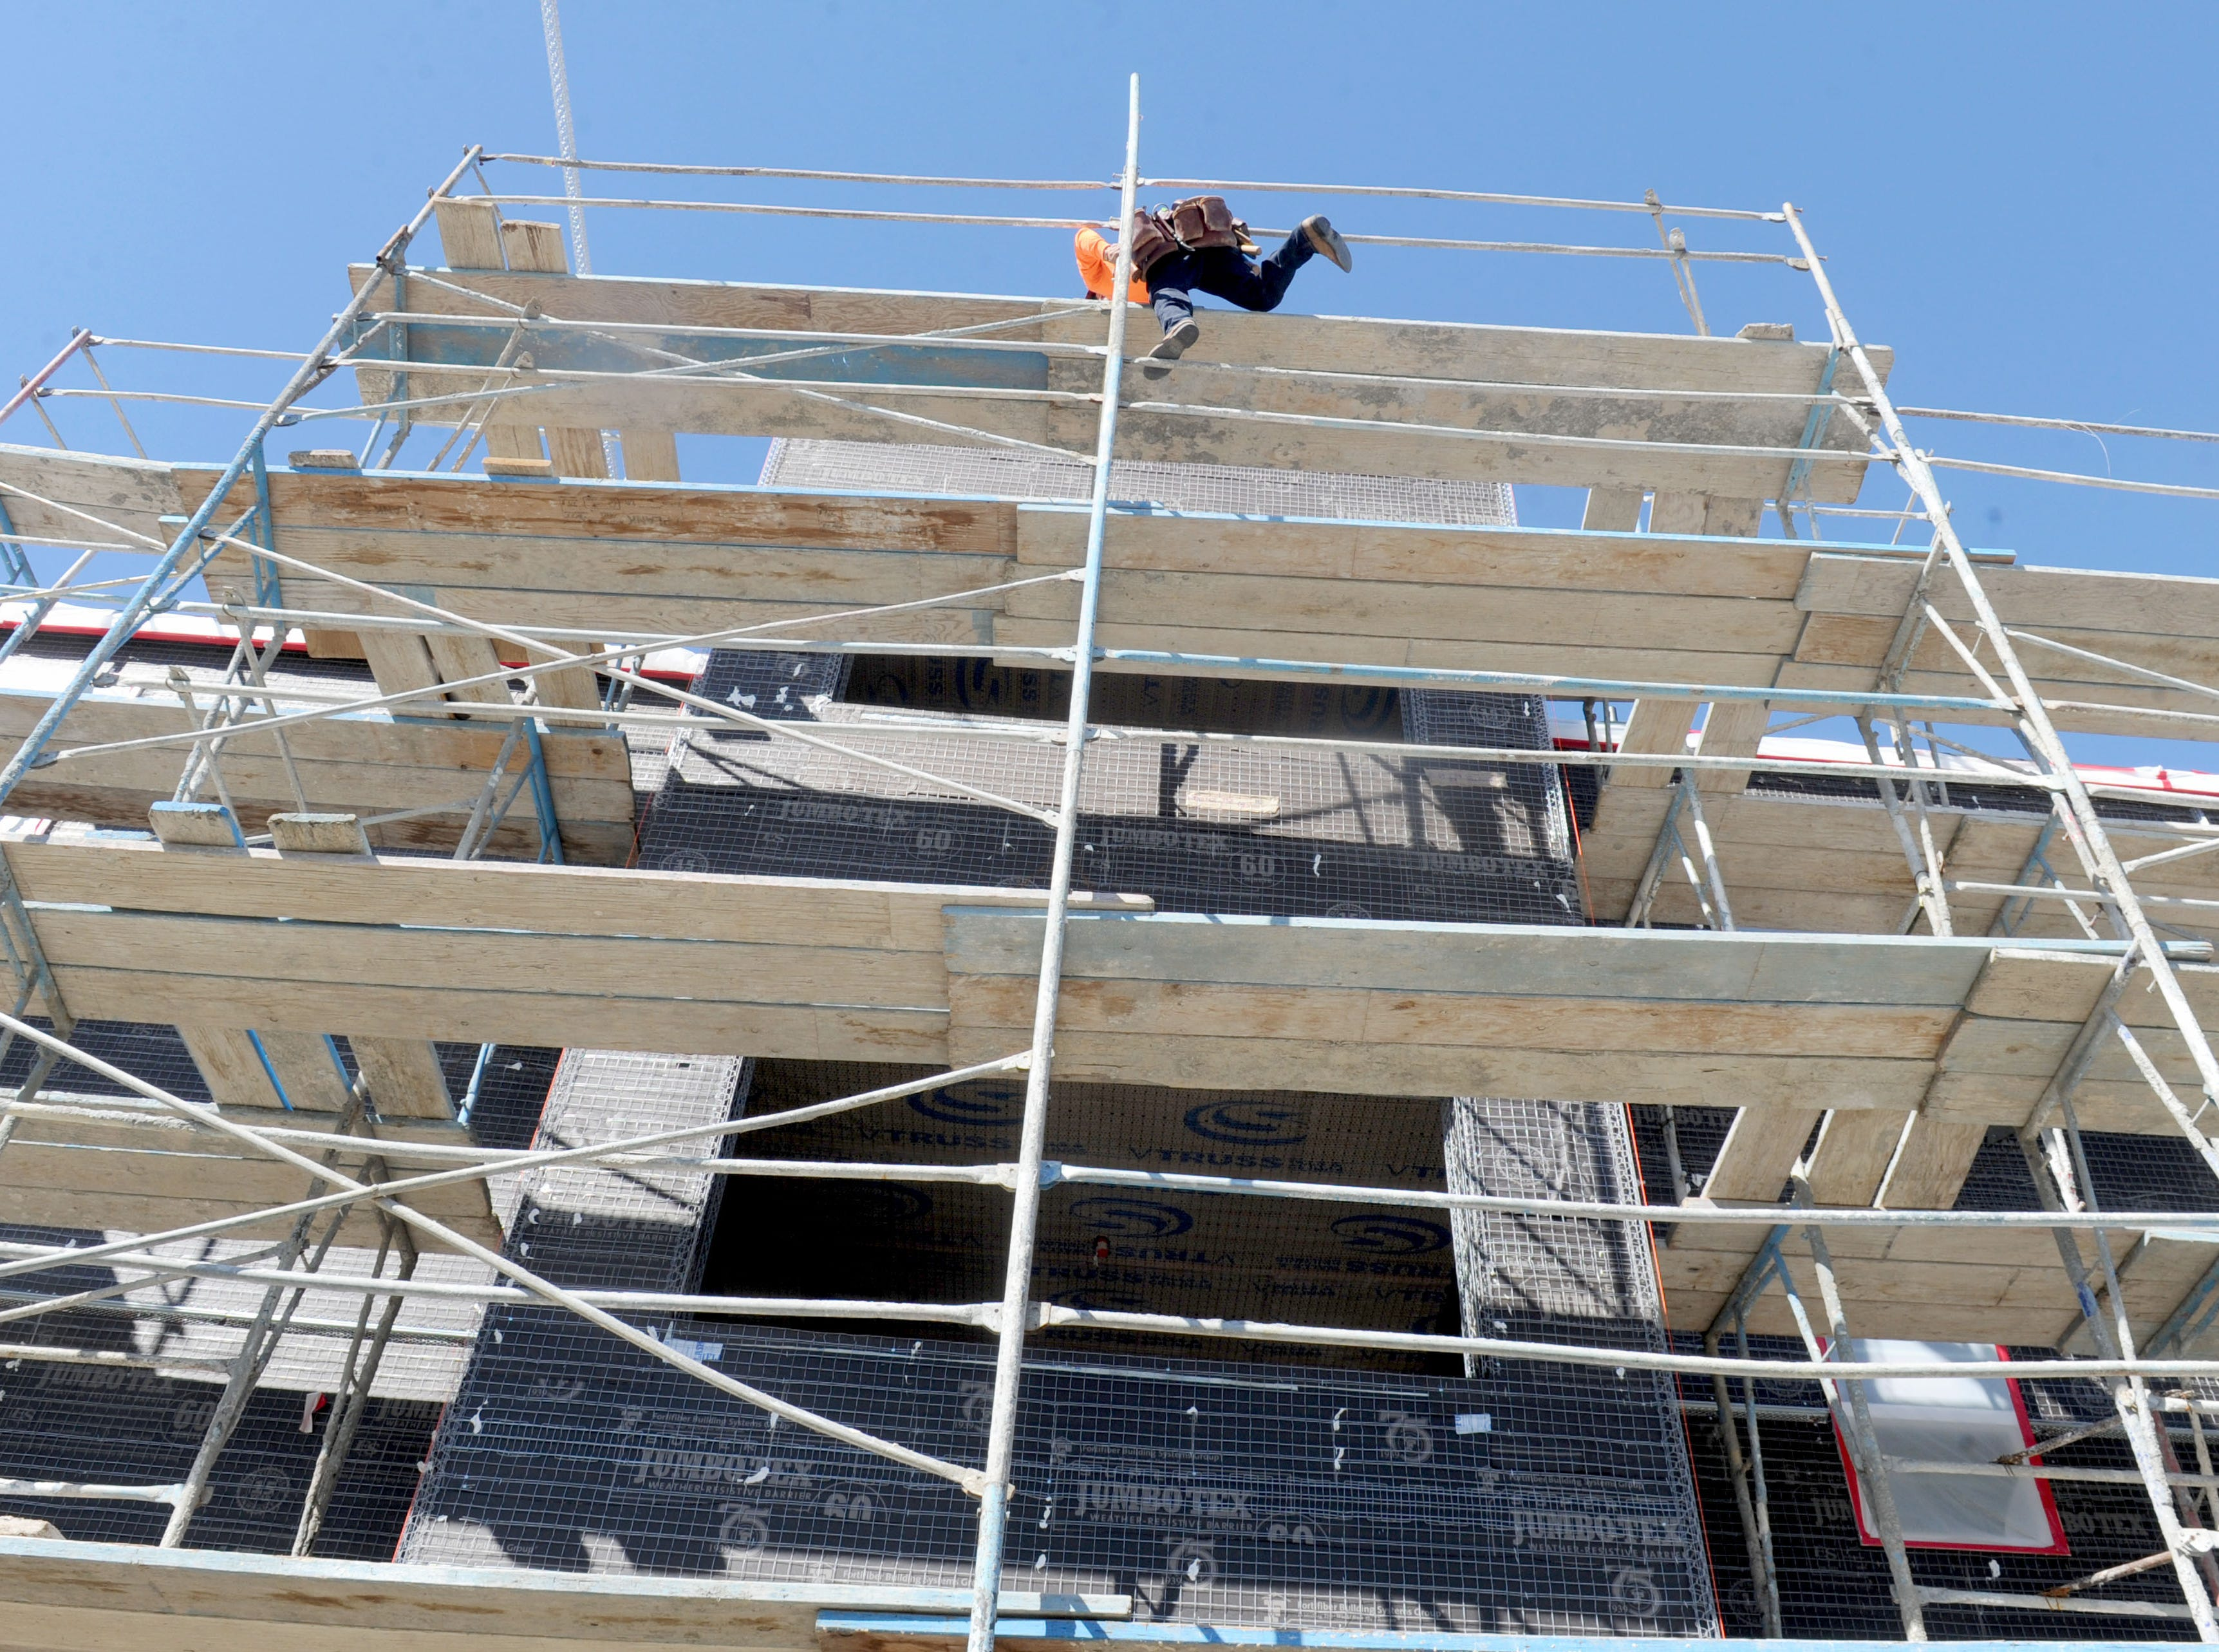 A construction worker climbs to the top of the Ormond Beach veterans housing complex that's under construction in Oxnard for affordable housing provider Many Mansions. The project is scheduled to be completed in August.